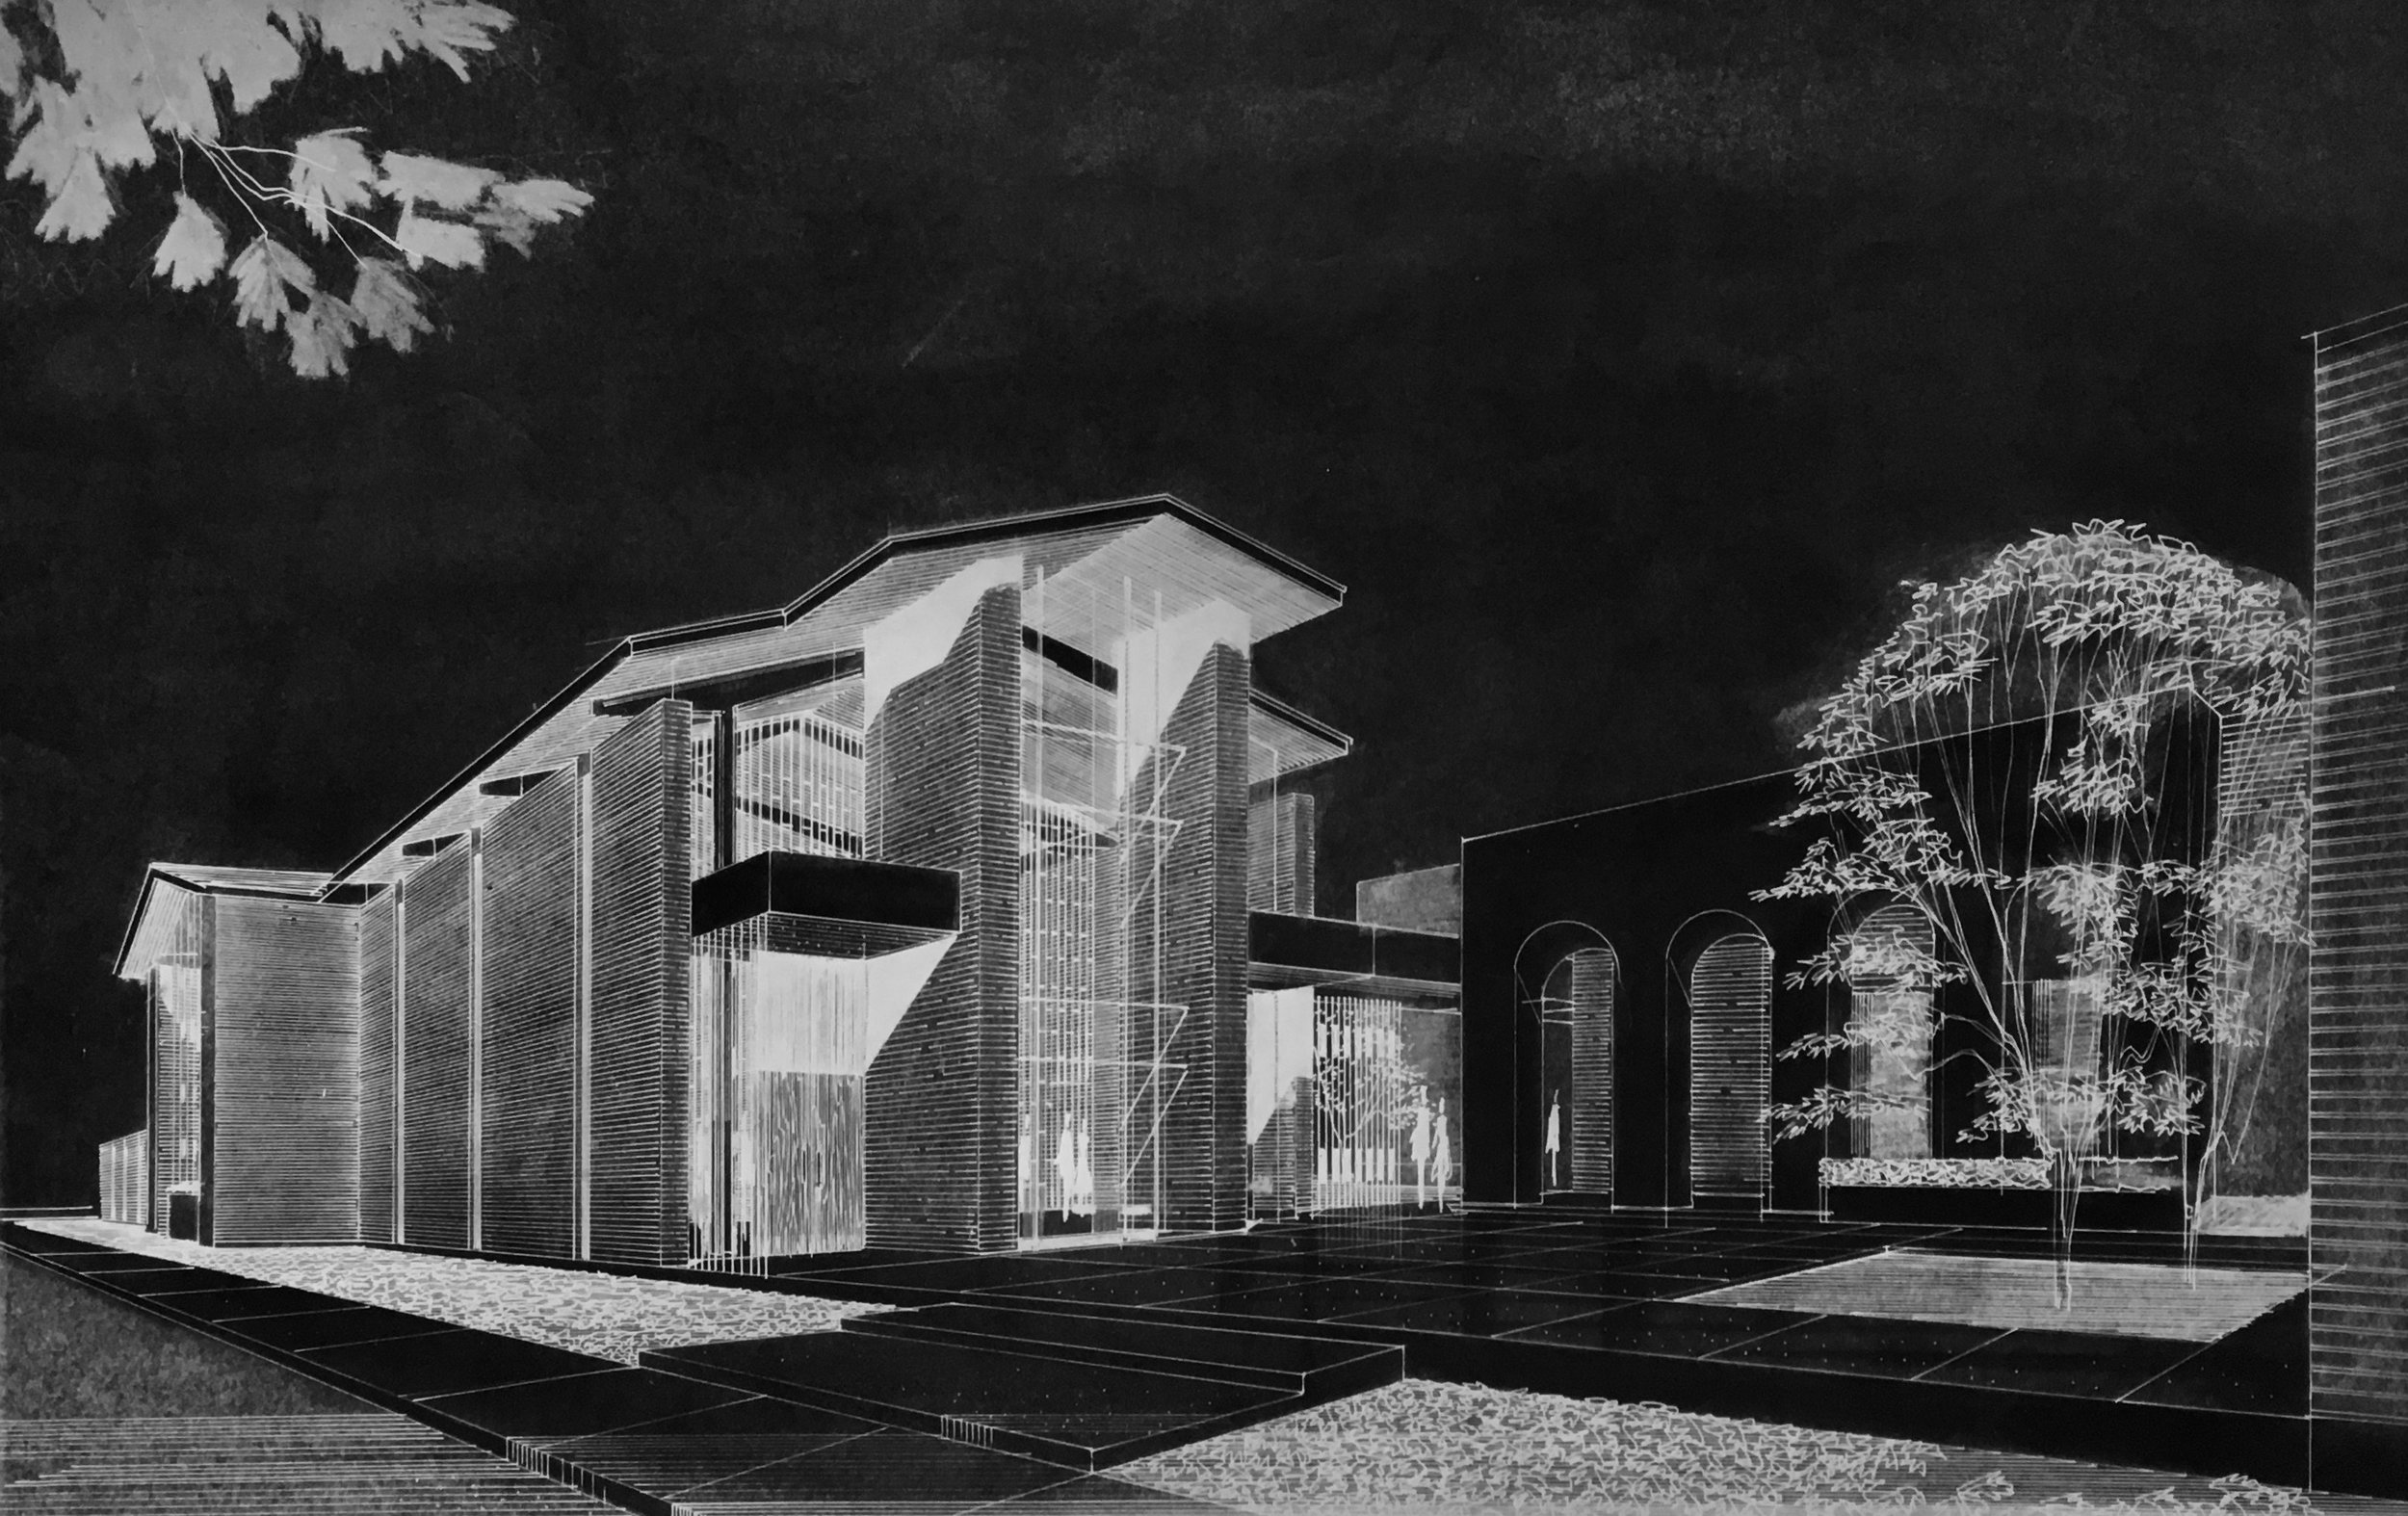 CHURCH 1_Desmond_First Christian Church_Hammond LA_Exterior Rendering.jpg